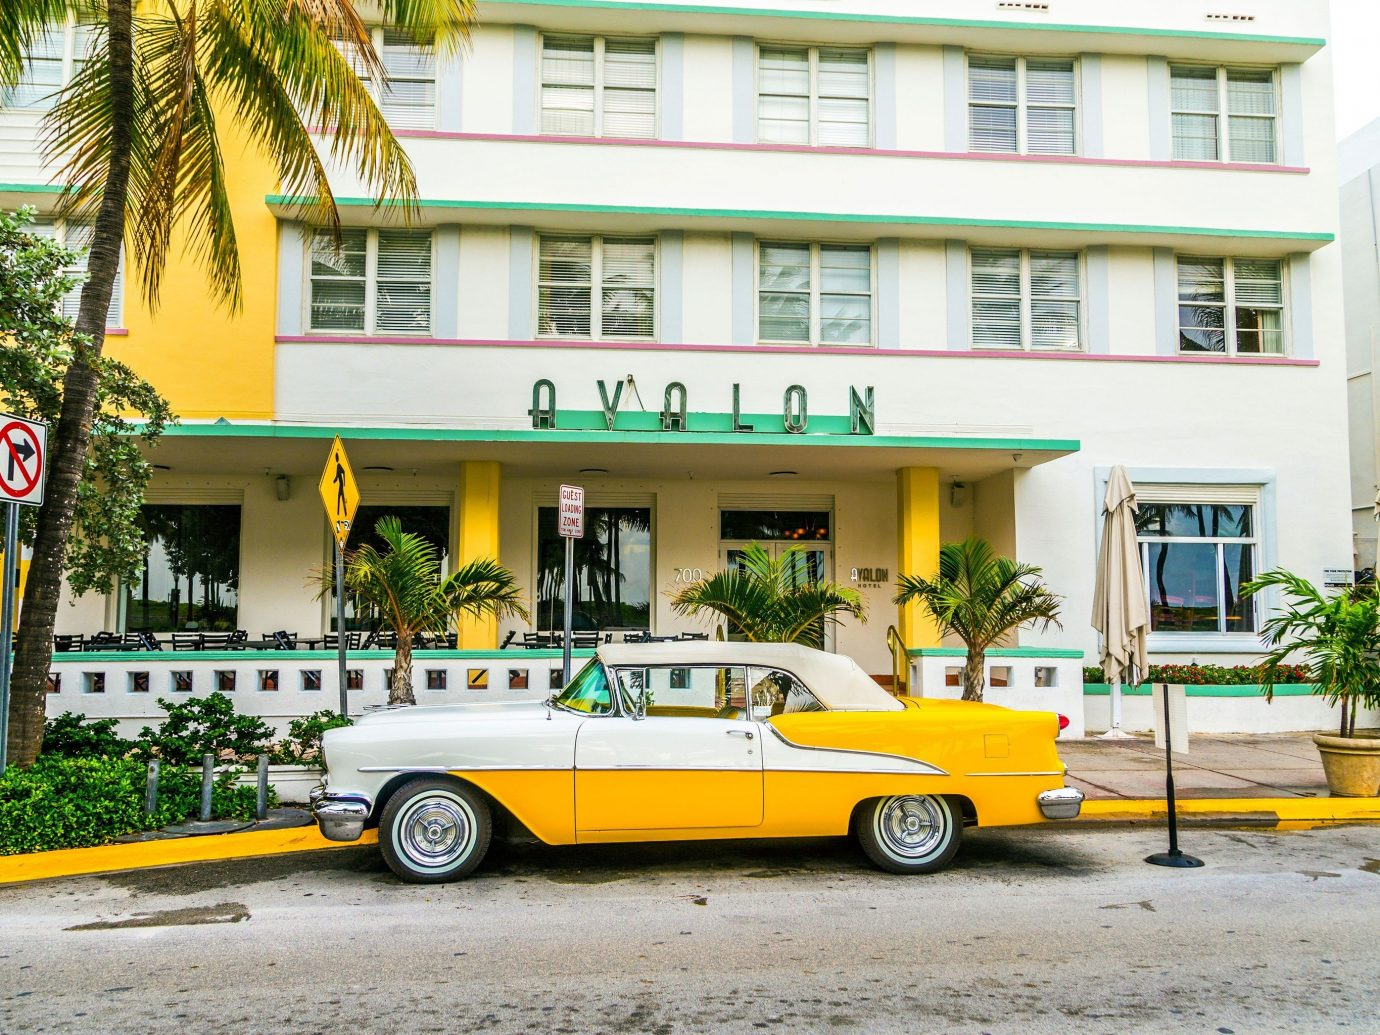 Offbeat outdoor building yellow car vehicle parked road neighbourhood street automobile make infrastructure facade taxi